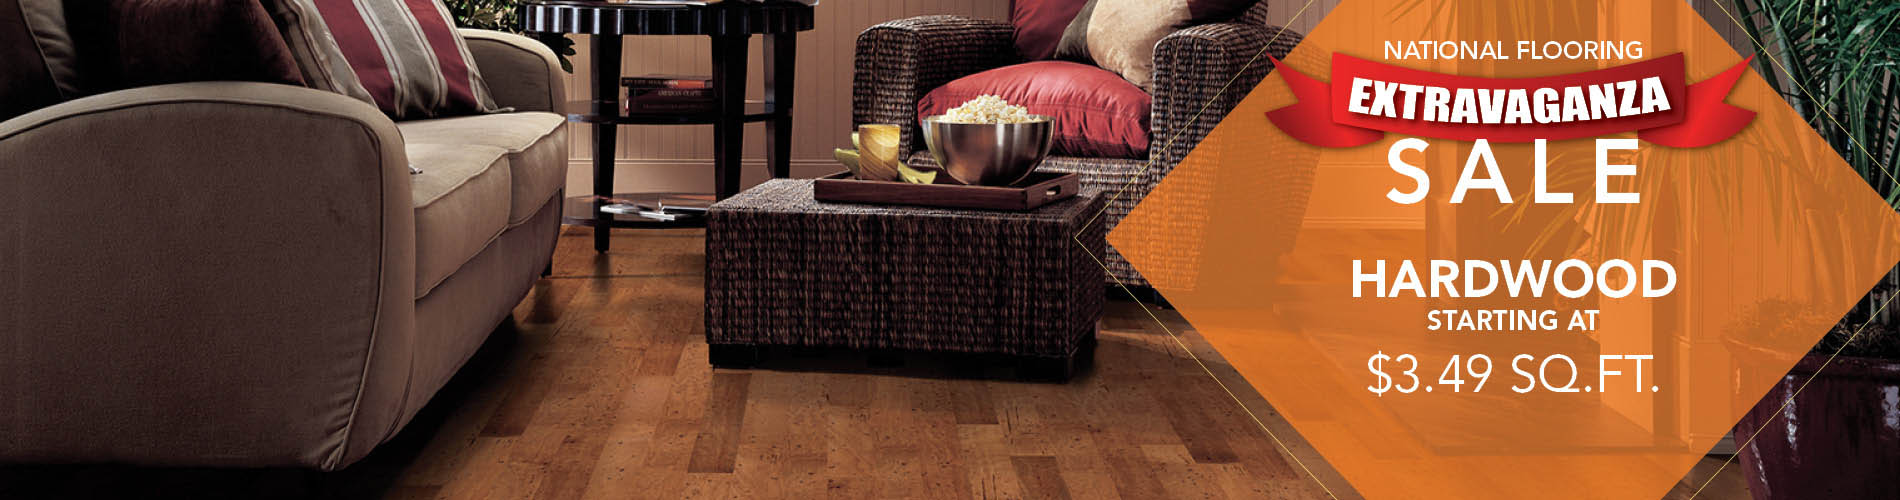 Hardwood starting at $3.49 sq.ft. during the National Flooring Extravaganza Sale at BK Floors To Go in Evansville